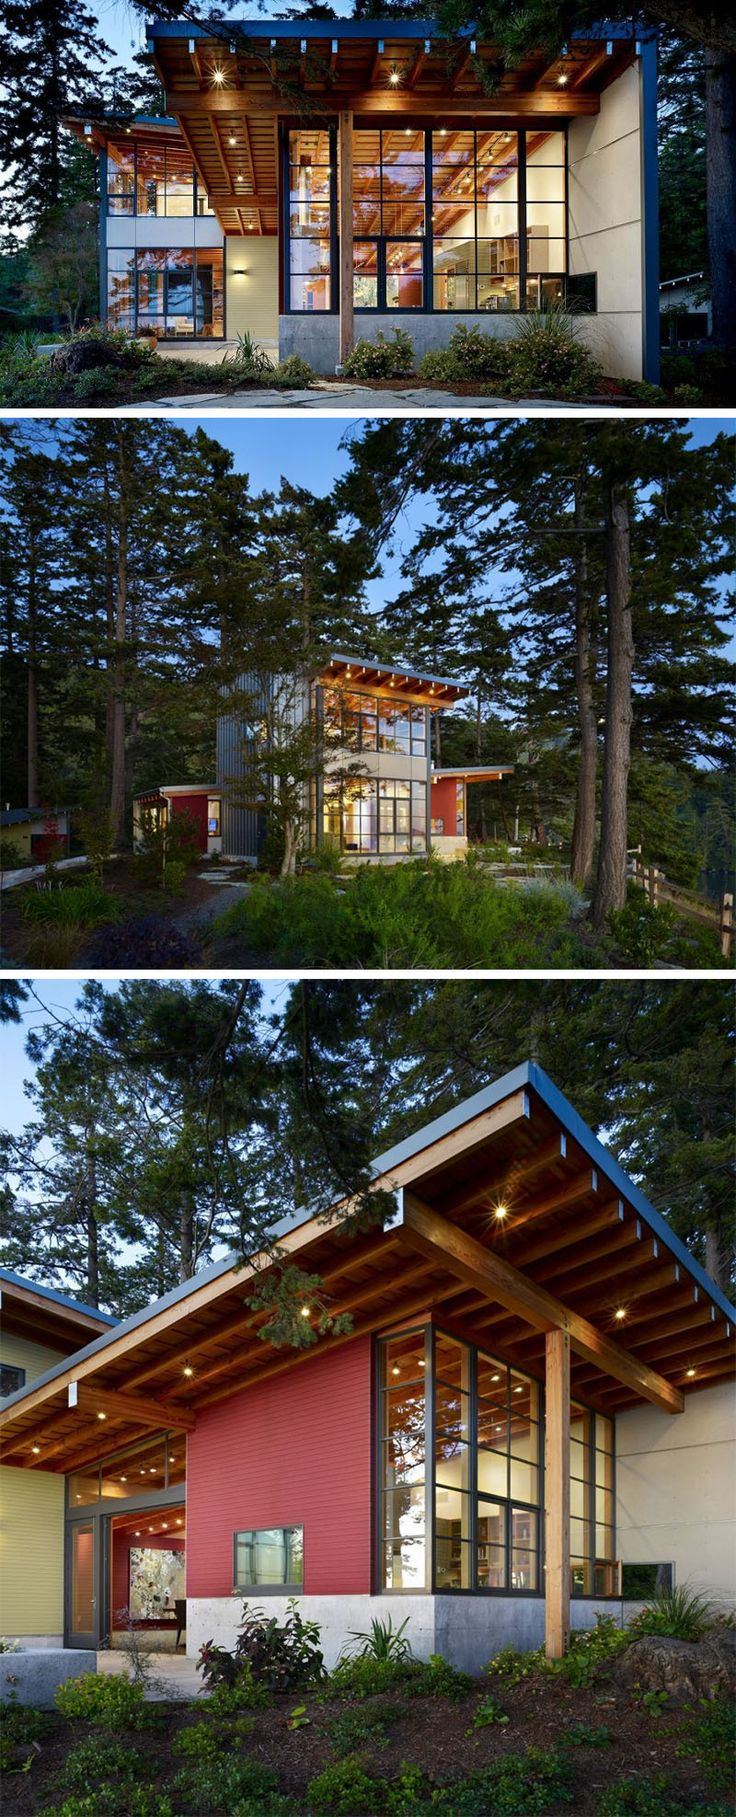 20 Awesome Examples Of Pacific Northwest Architecture // A wood beam structure, visible concrete foundation, and huge windows give this forest home a very west coast feel.